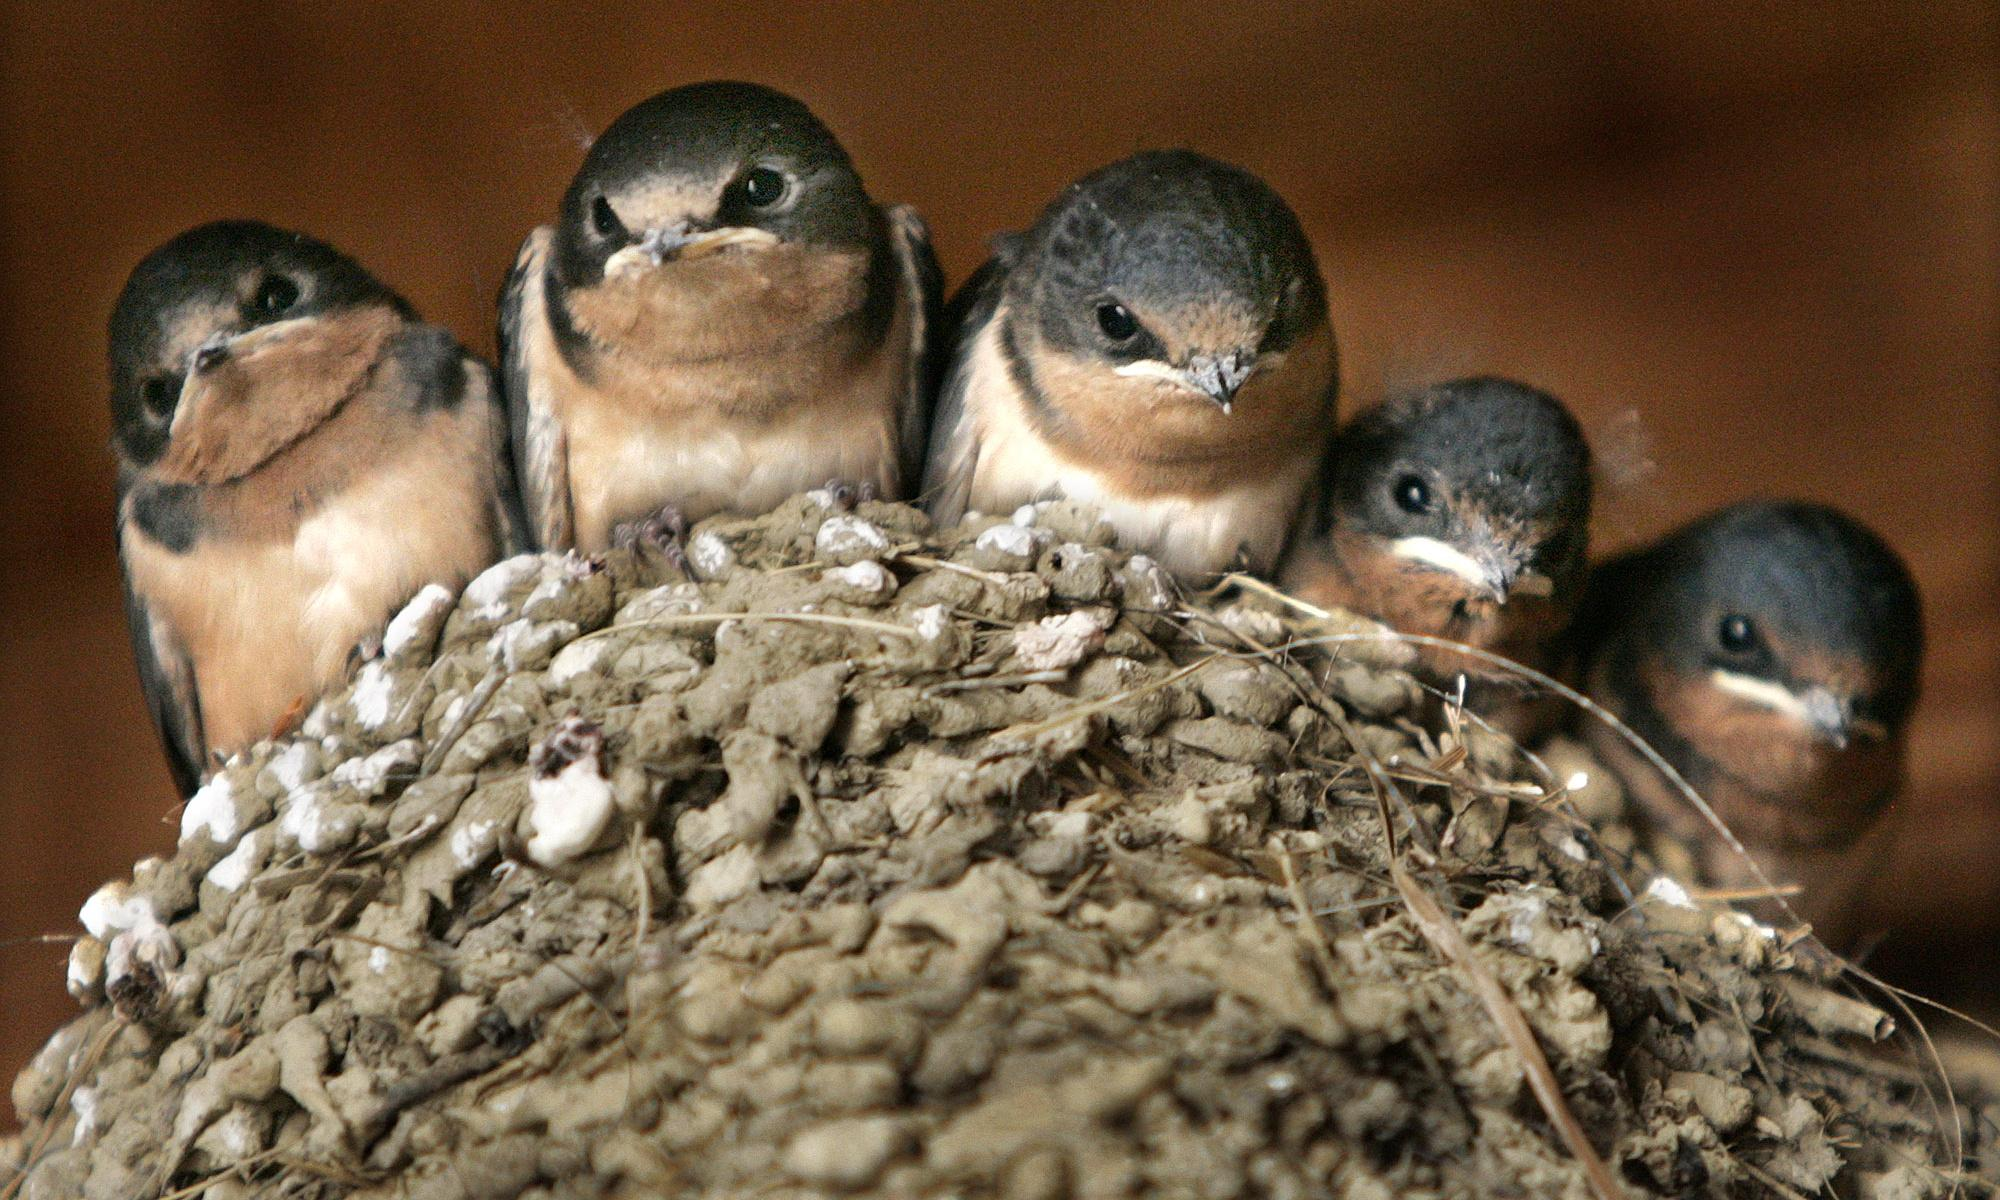 Are nets to stop swallows nesting any way to treat the natural world?